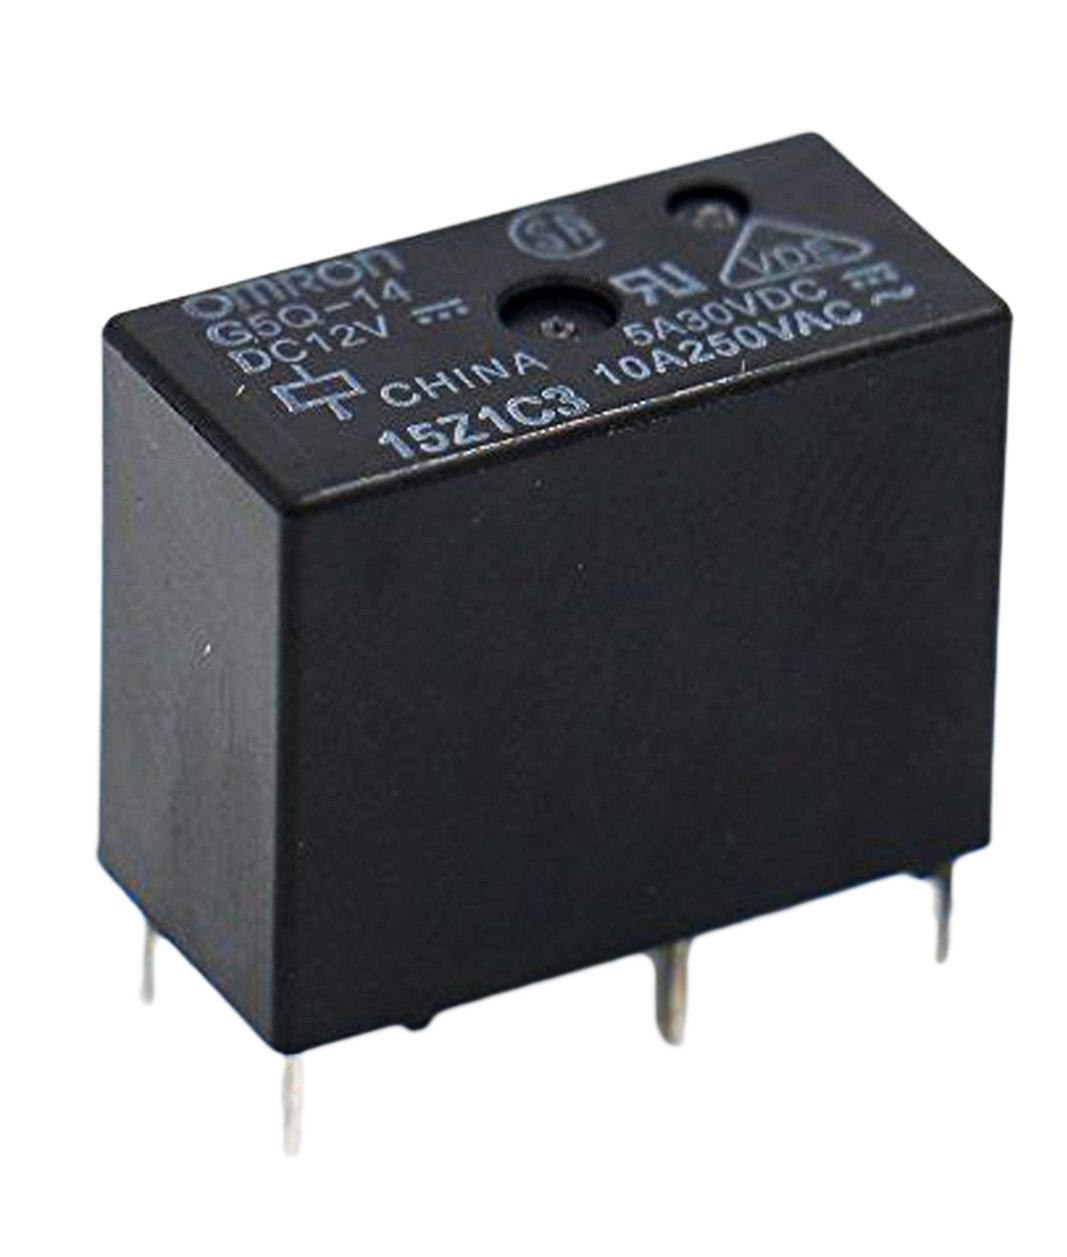 Best Rated In Switches Helpful Customer Reviews Electrical Engineering 120vac 10amp Dpdt Relay Question Aquarium Omron Electronic Components G5q 14 Dc12 Power Spdt 12vdc 10a